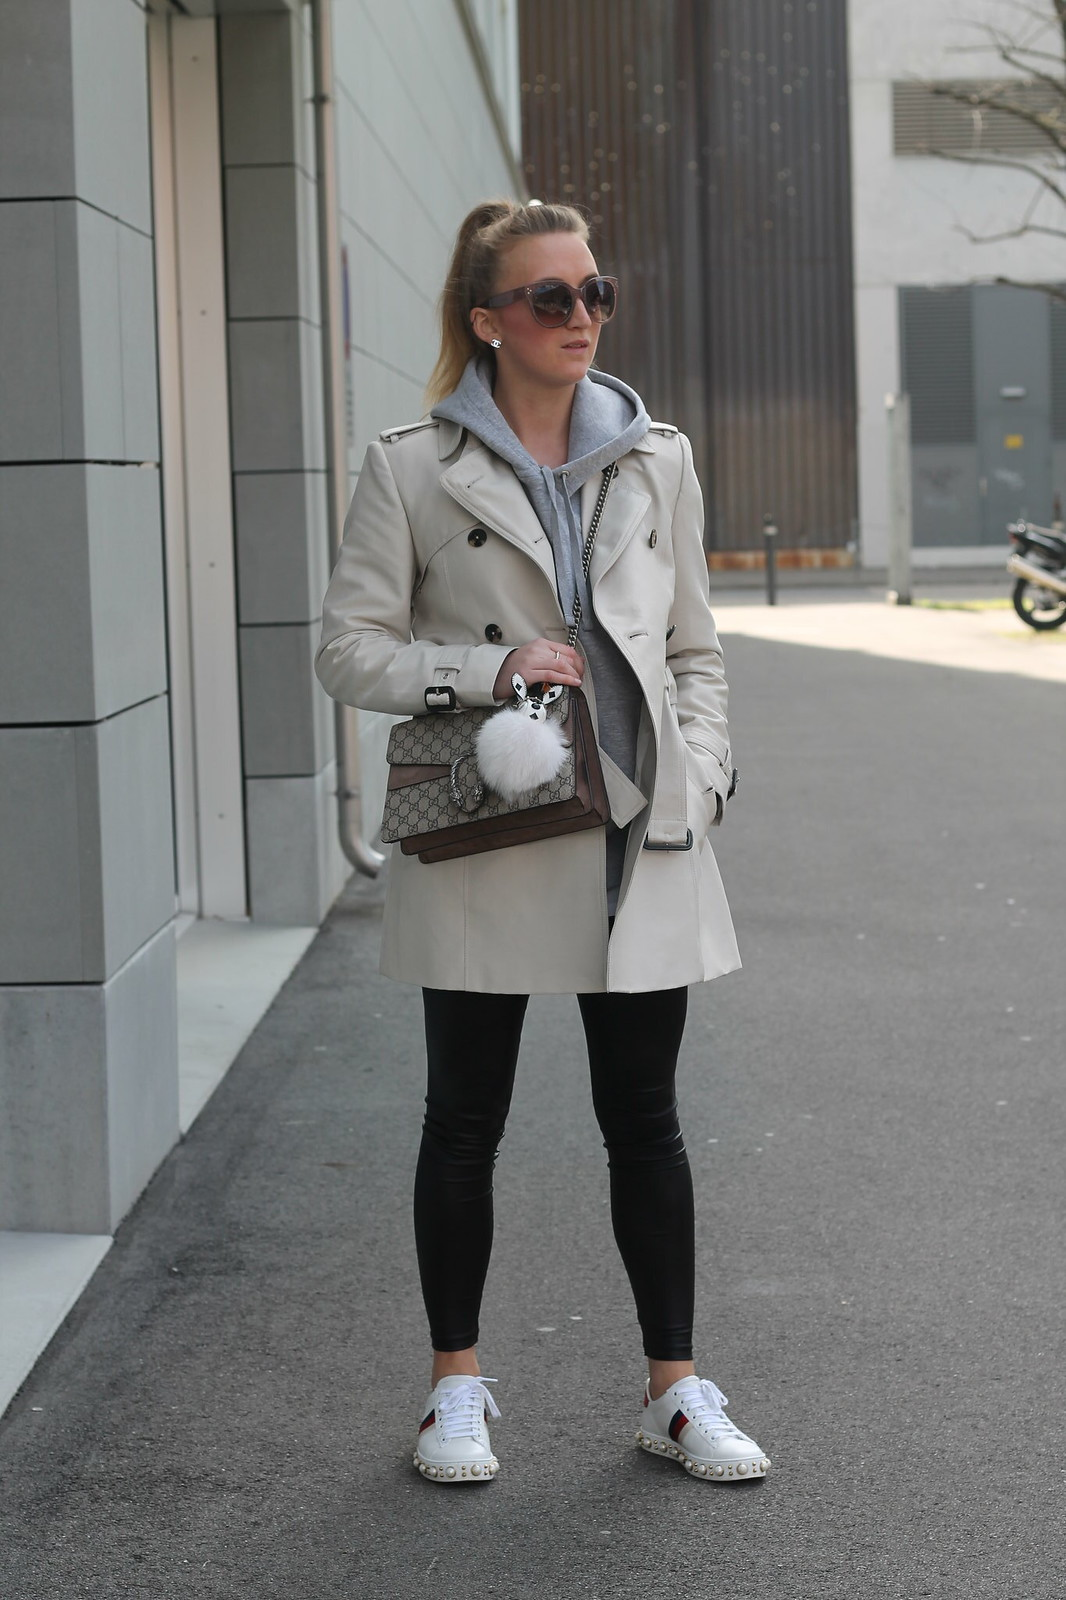 trenchcoat-whole-outfit-front-wiebkembg